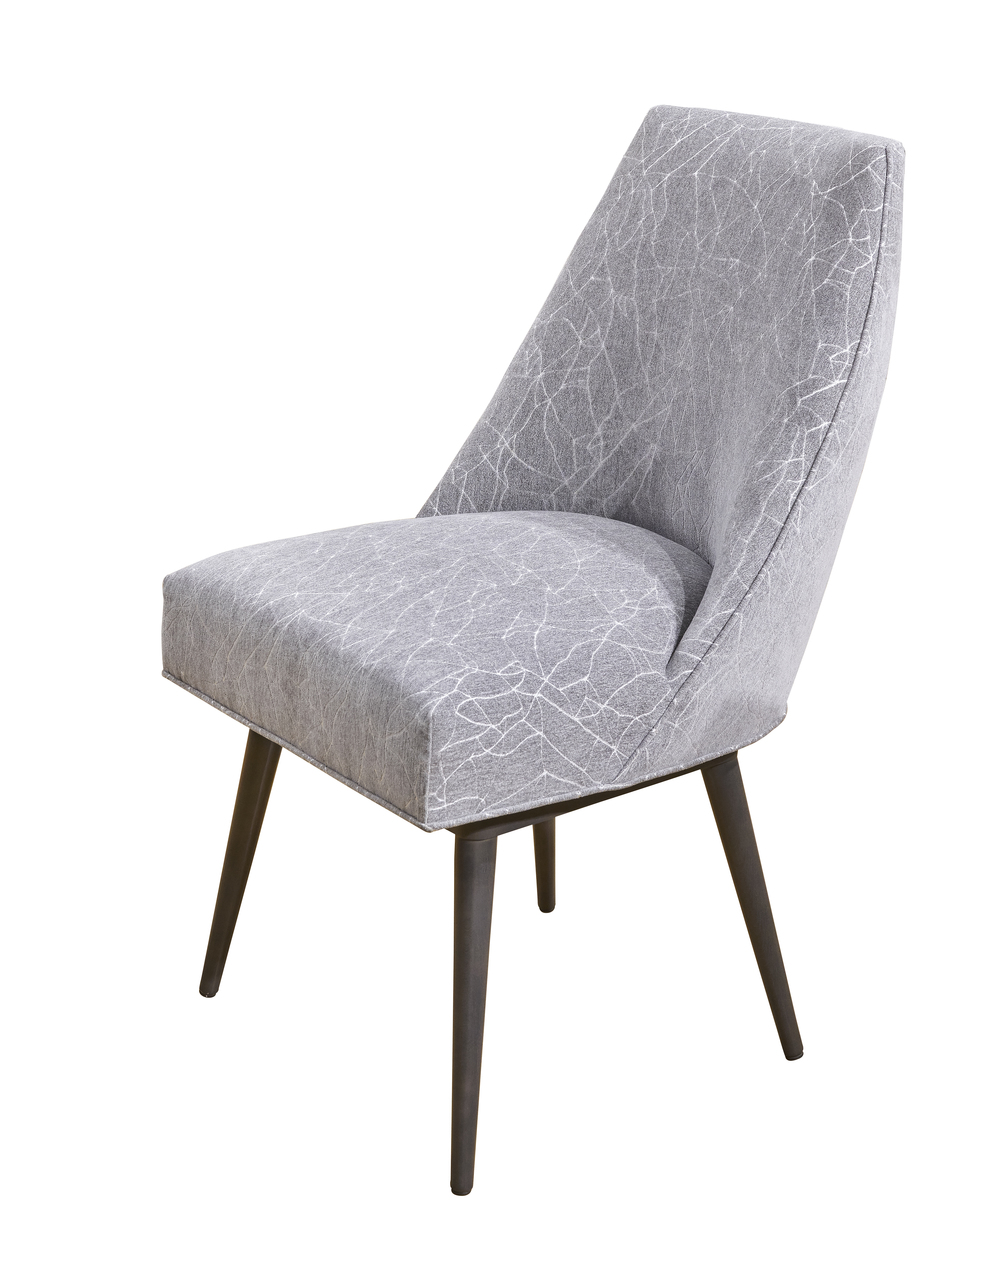 Designmaster Furniture - Saratoga Side Chair